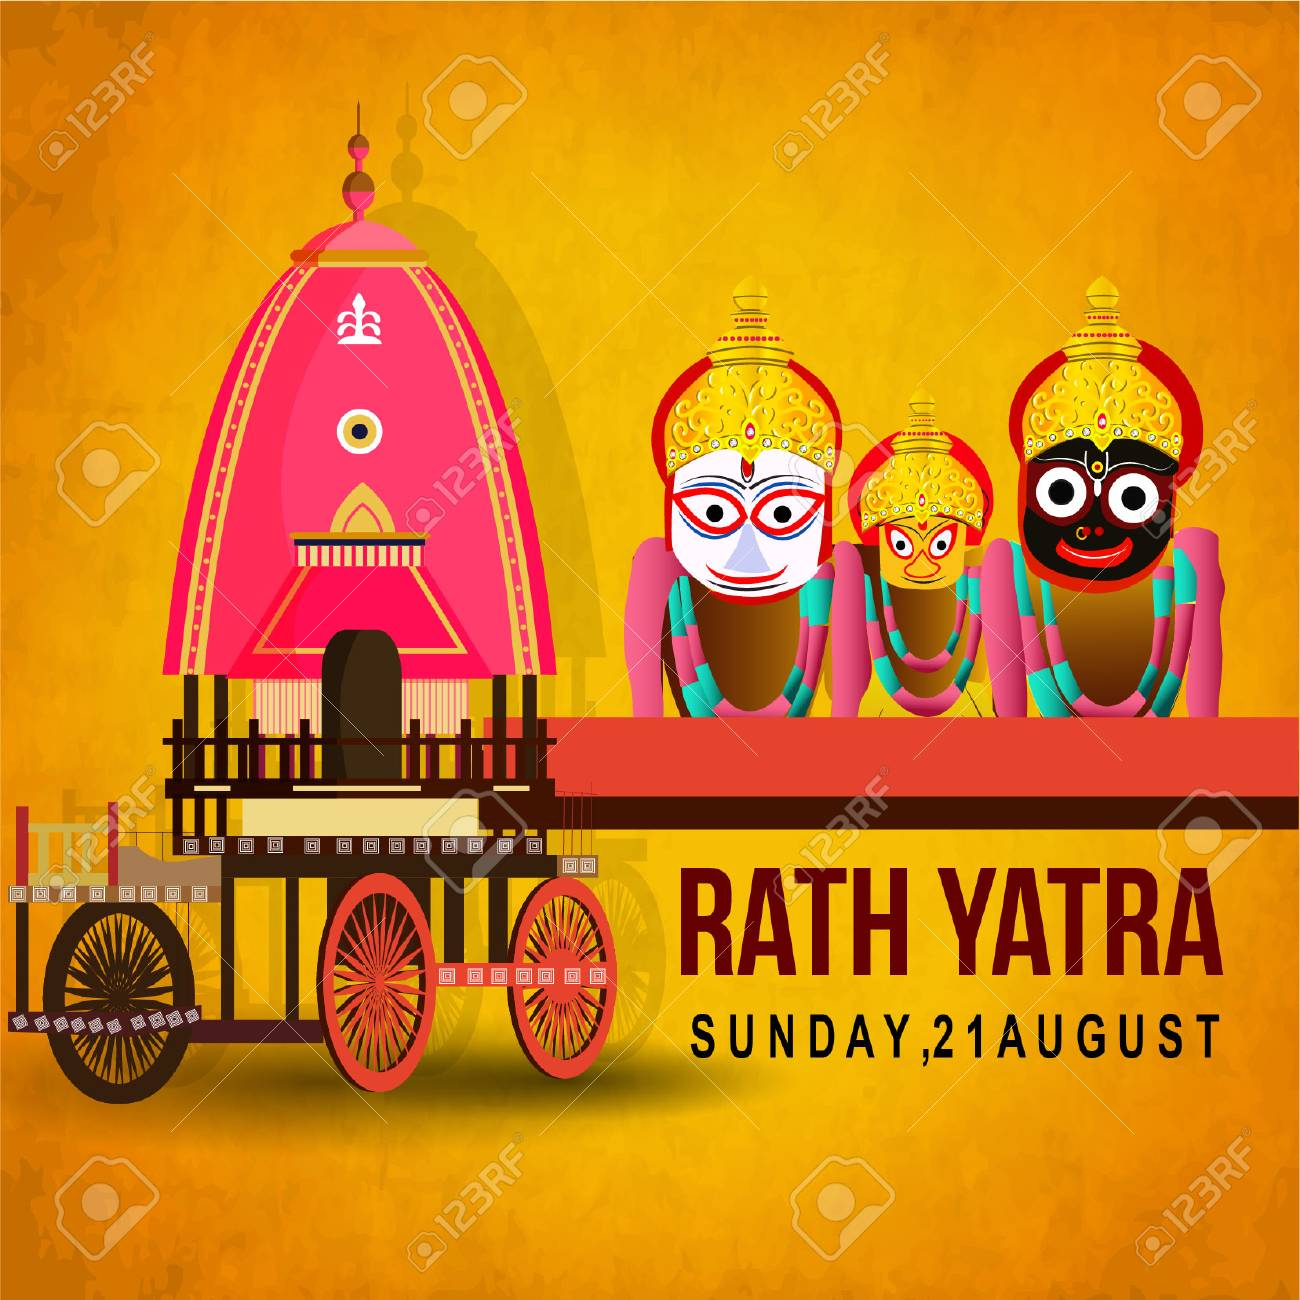 Rath yatra clipart 3 » Clipart Station.